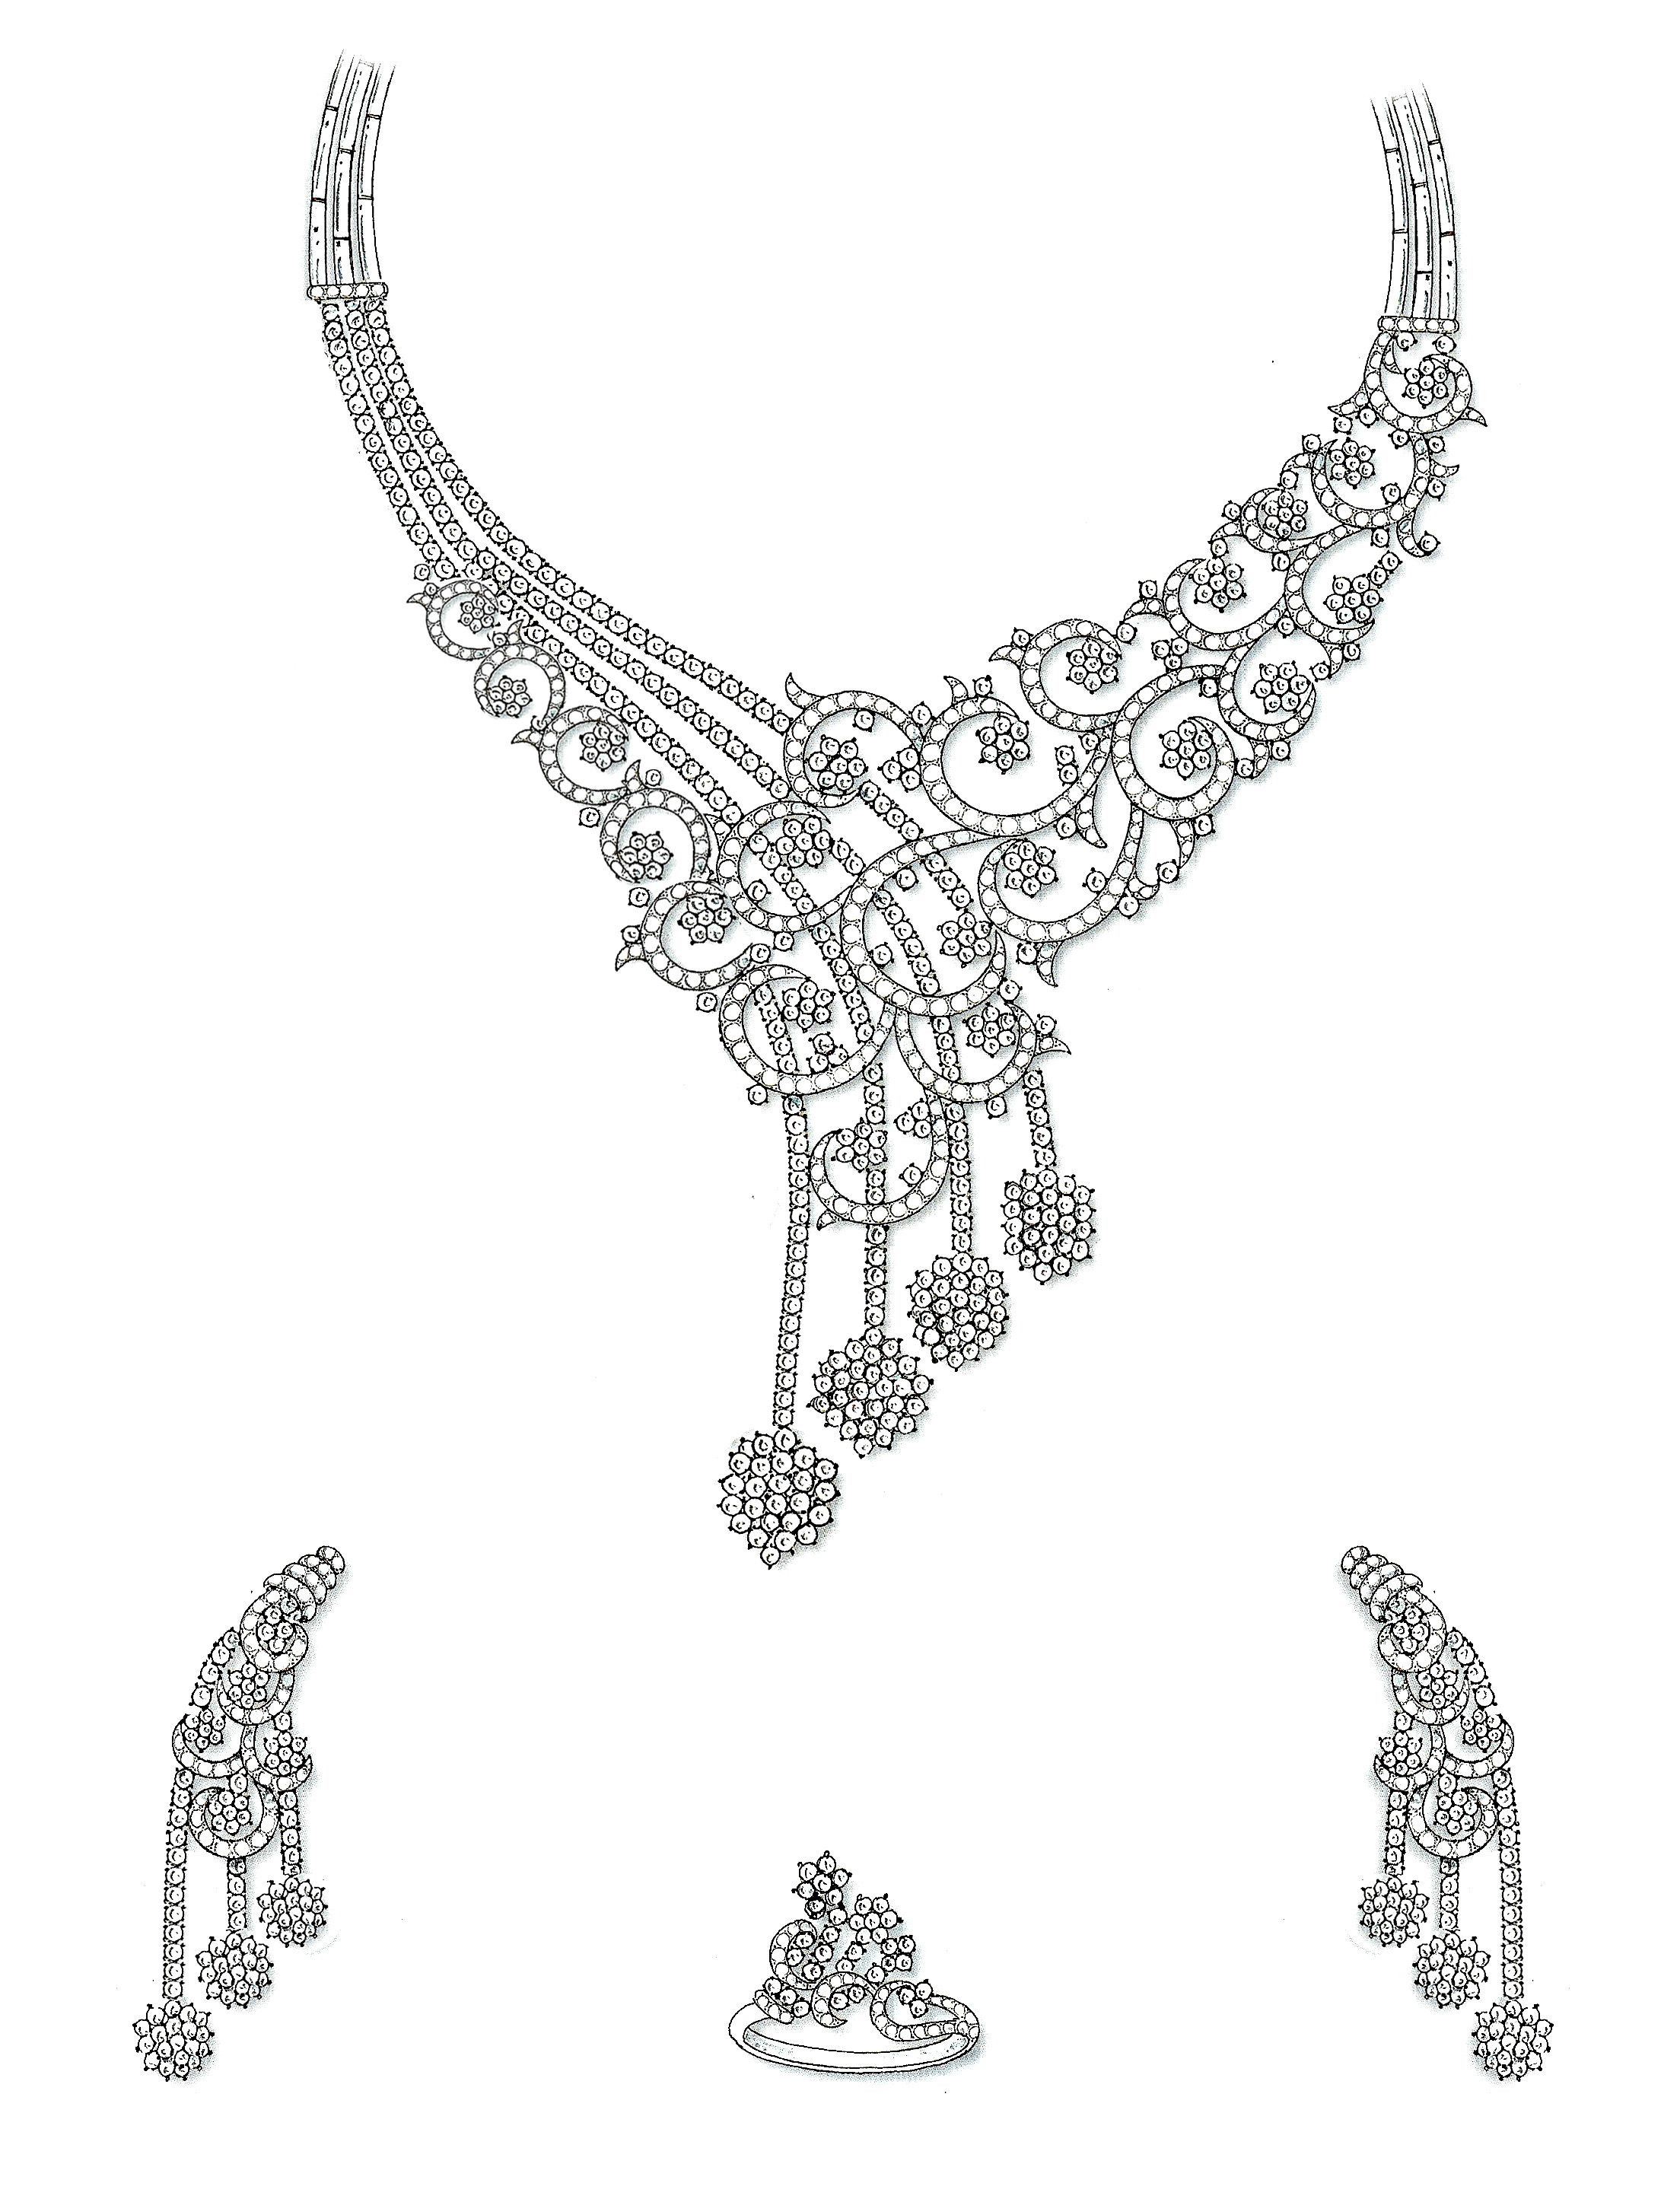 Necklace Design Sketches  Print Photos  View FullSize